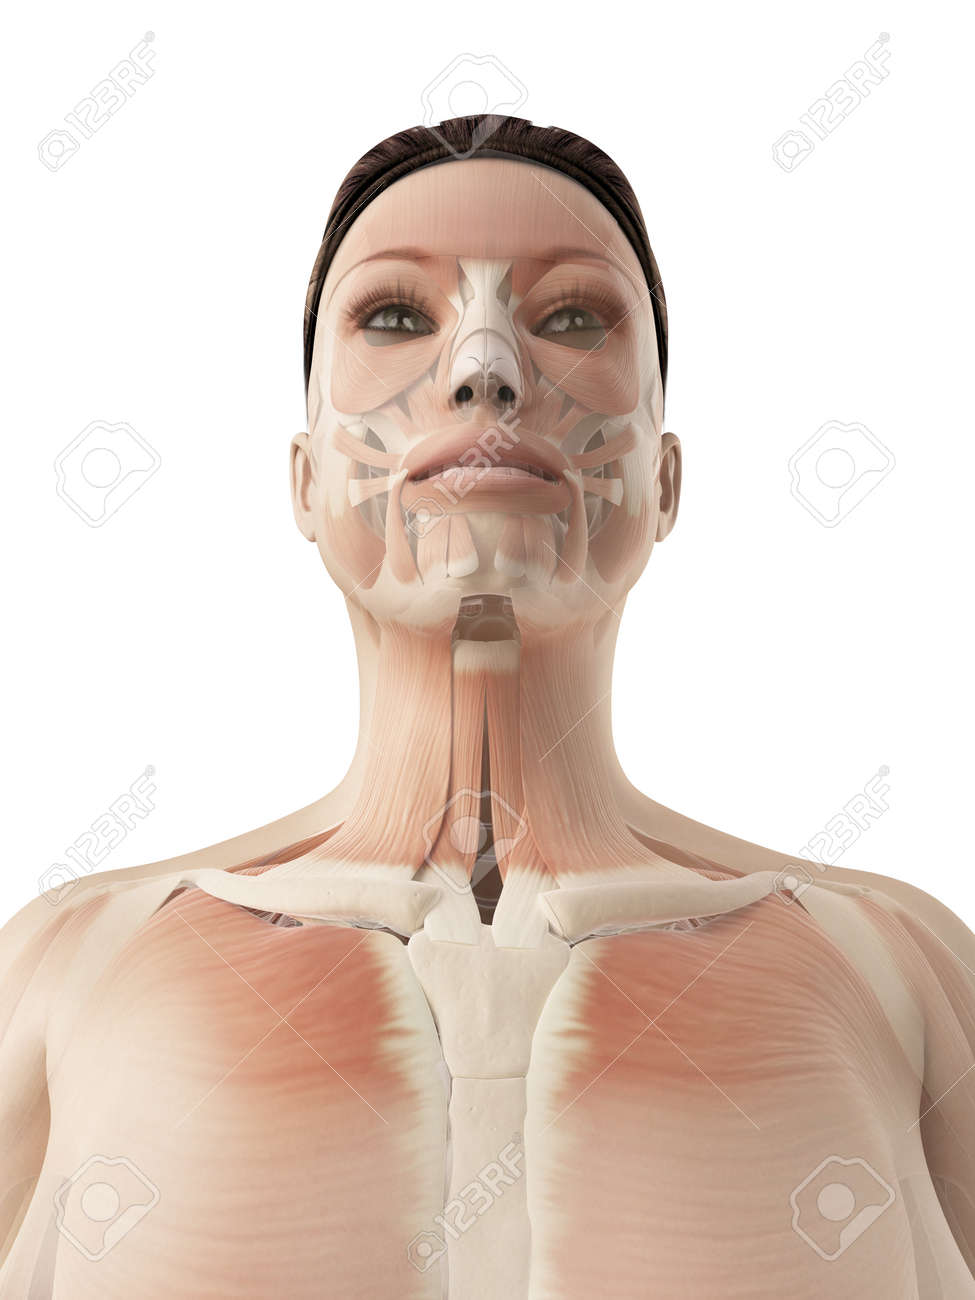 muscles of the face Stock Photo - 23222239